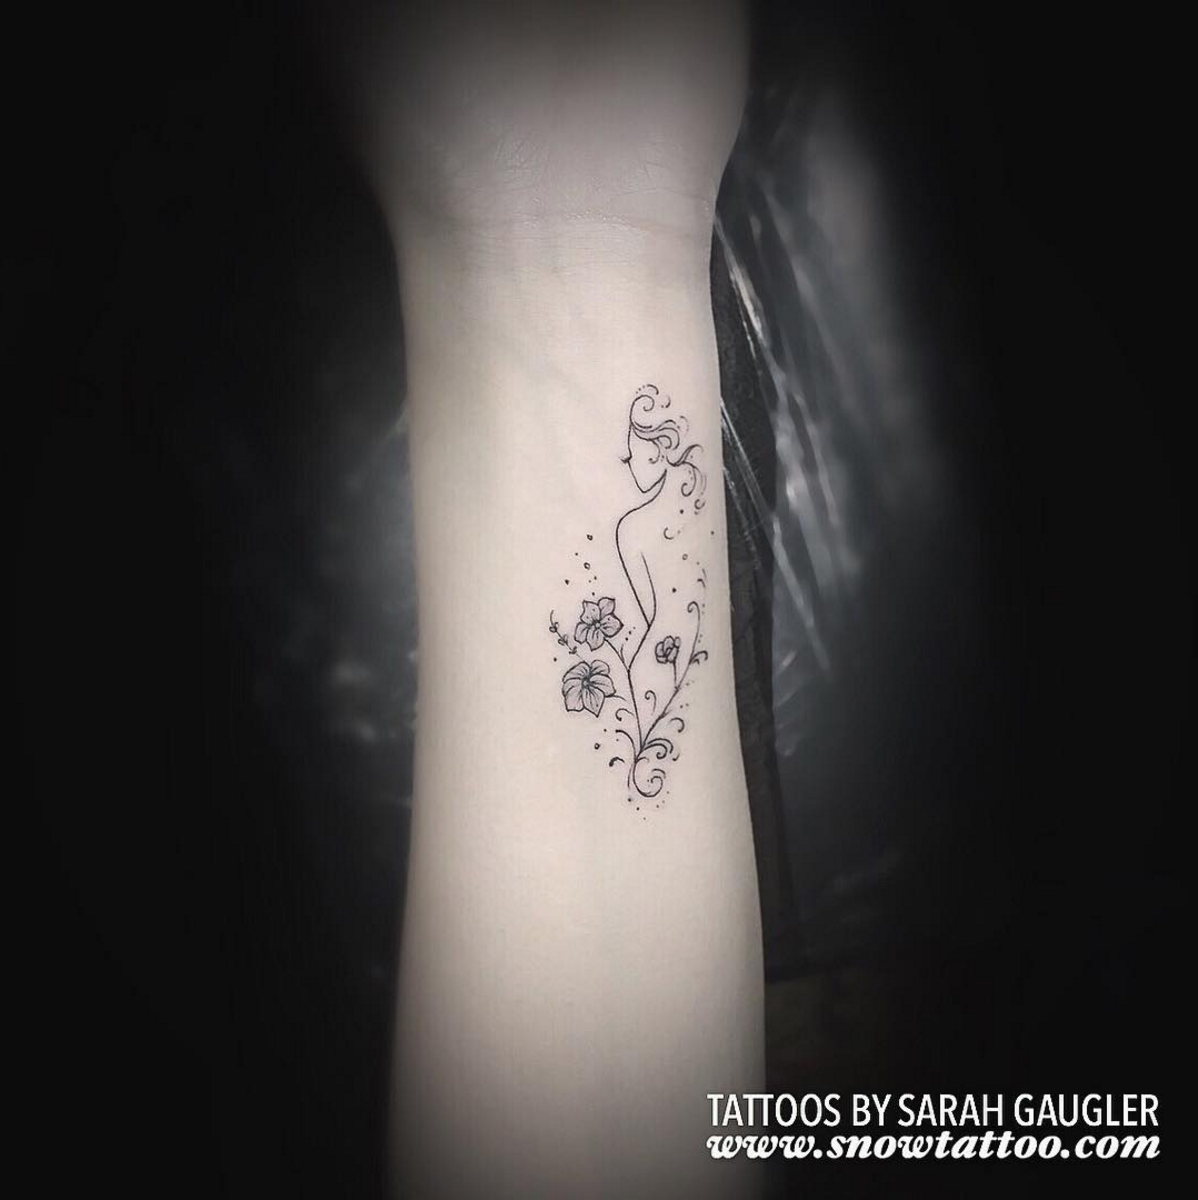 Sarah Gaugler Snow Tattoo Custom Feminine Silhouette Floral Fine Line Detailed Elegant FineLineTattoo New York Best Tattoos Best Tattoo Artist NYC.png